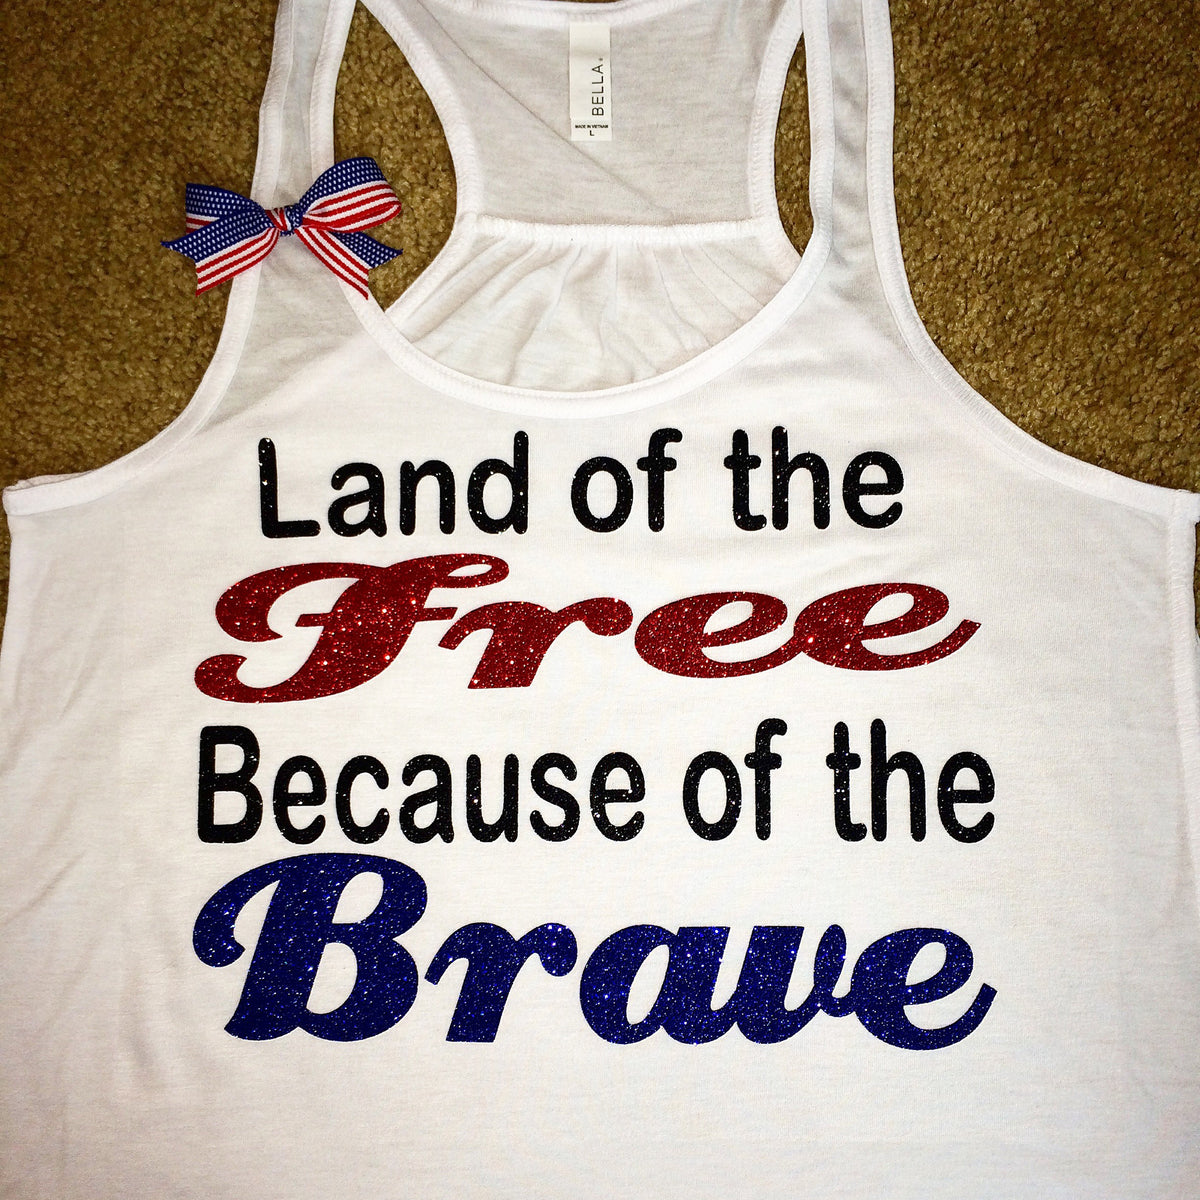 24e2628782a21 Land of the Free - Because of the Brave - White Tank - Ruffles with Love - Racerback  Tank - Womens Fitness - Workout Clothing - Workout Shirts with Sayings